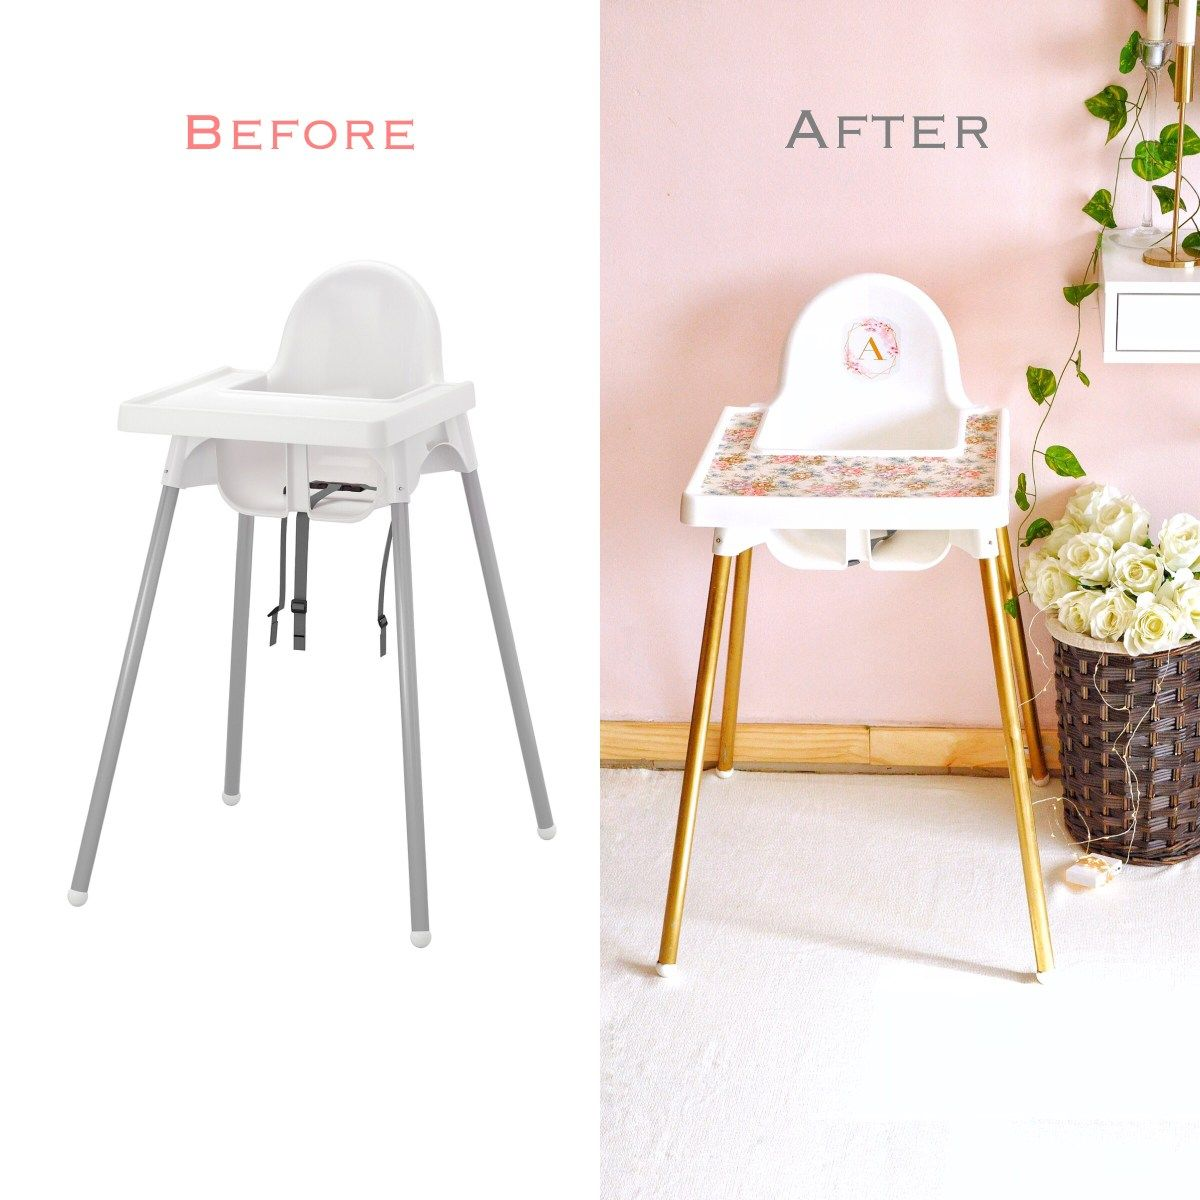 Ikea Antilop Baby Chair Makeover In 2020 Chair Makeover Ikea High Chair Baby Chair